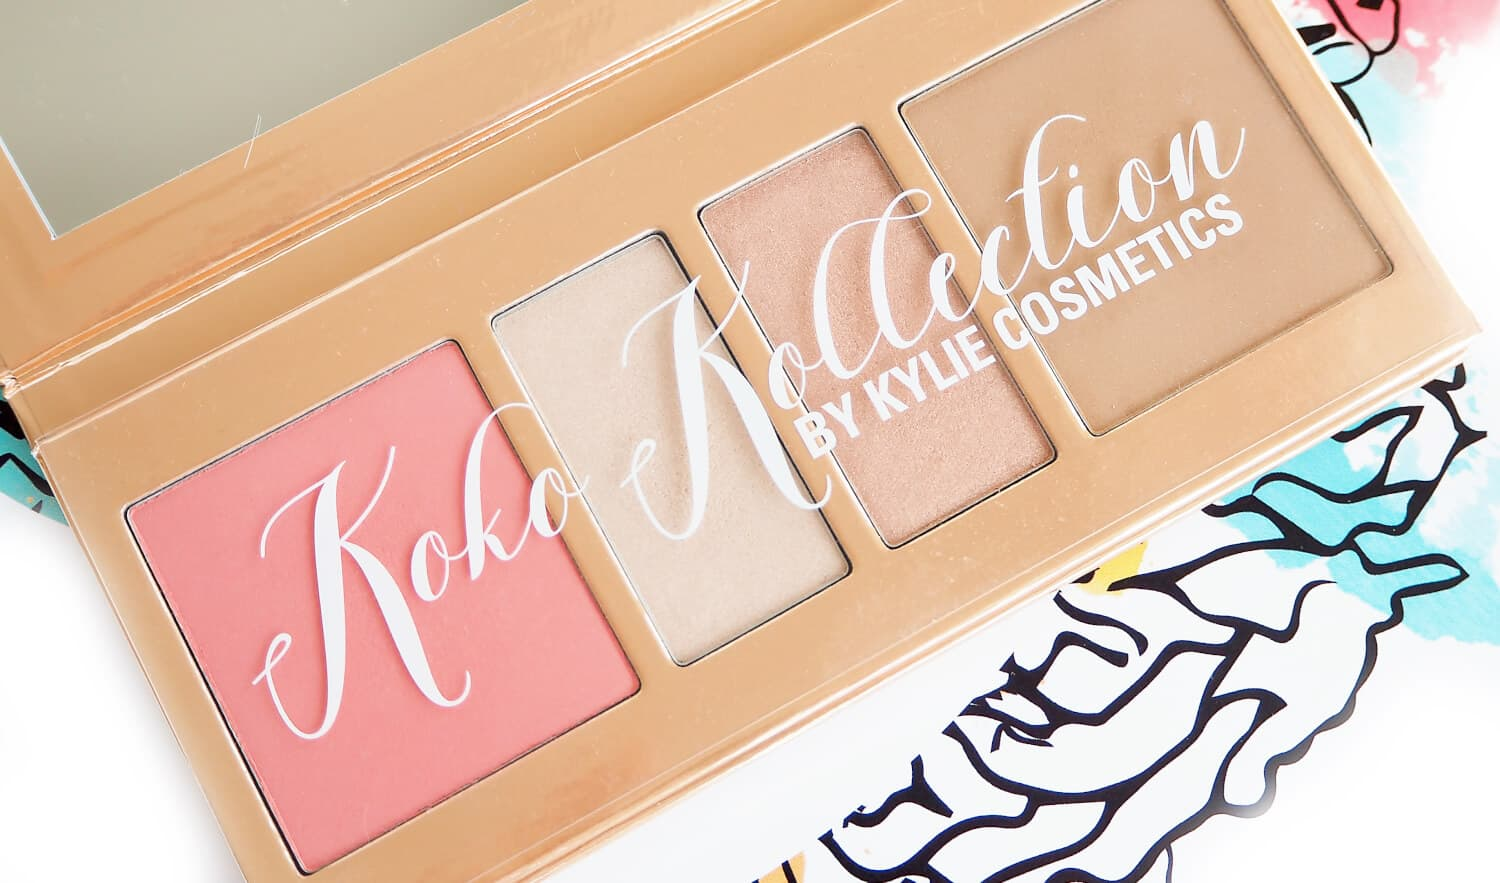 KOKO KOLLECTION PRESSED POWDER PALETTE BY KYLIE COSMETICS